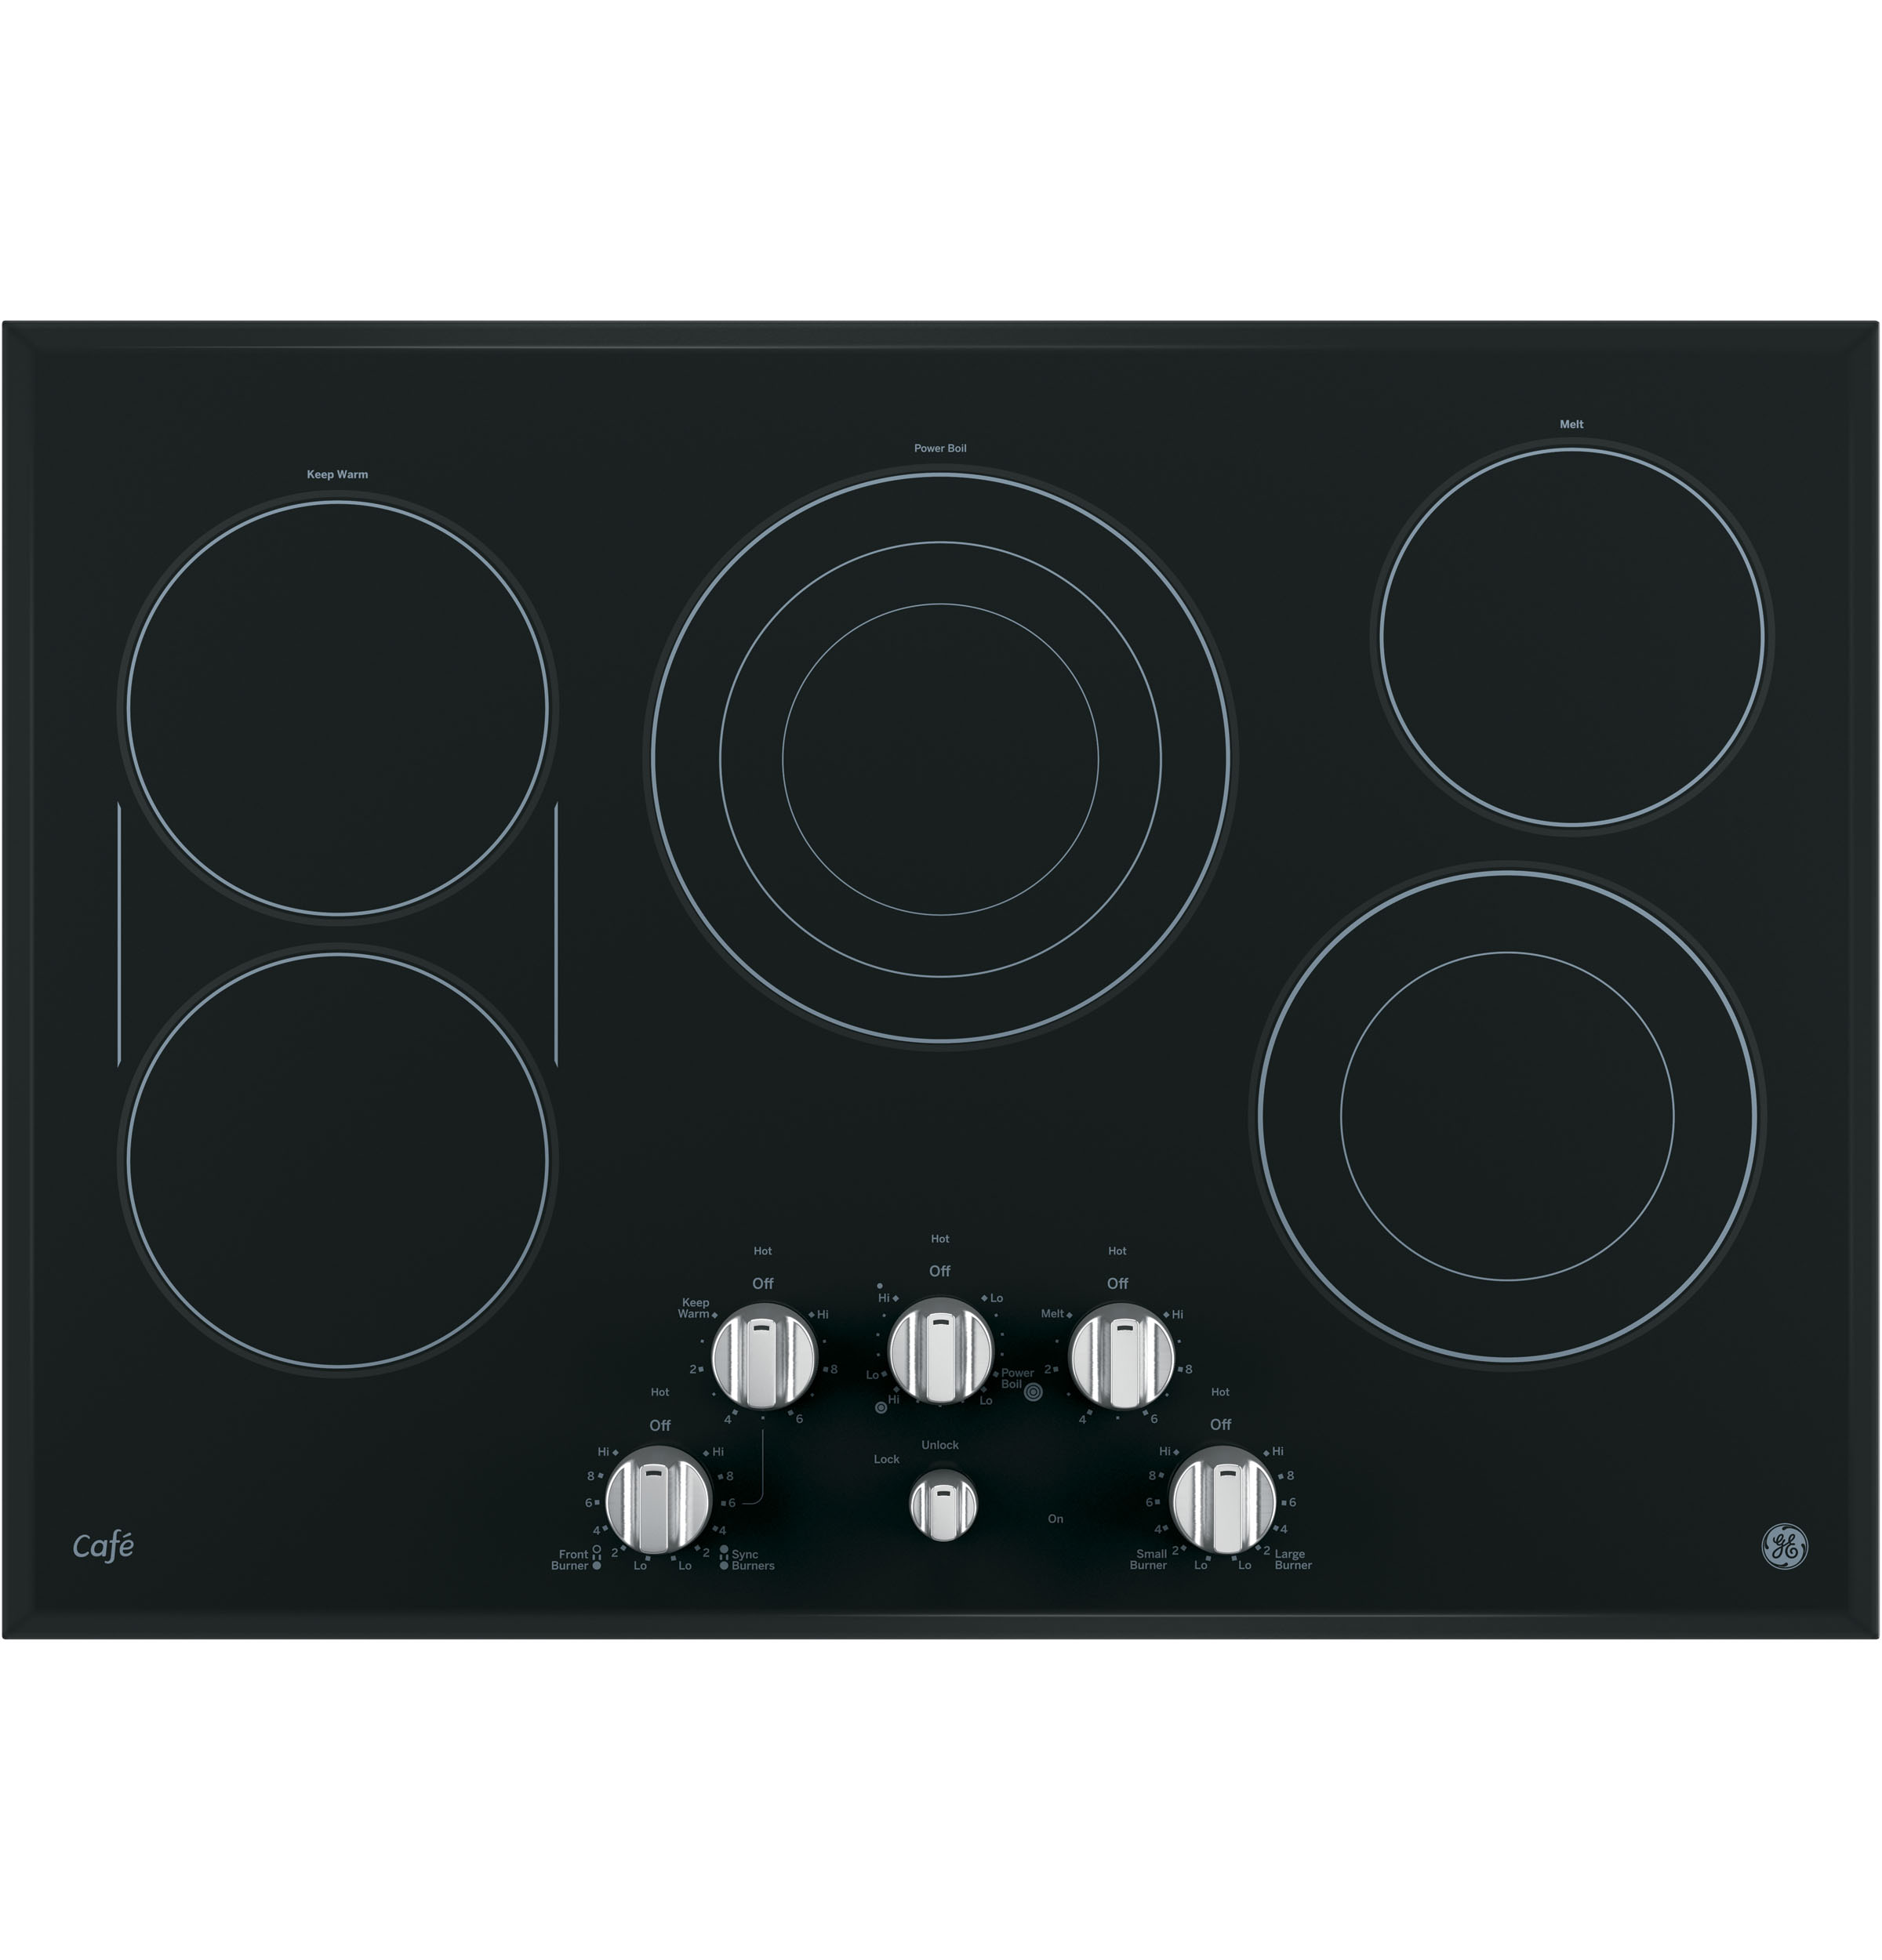 "GE Cafe GE Café™ Series 30"" Built-In Knob Control Electric Cooktop"